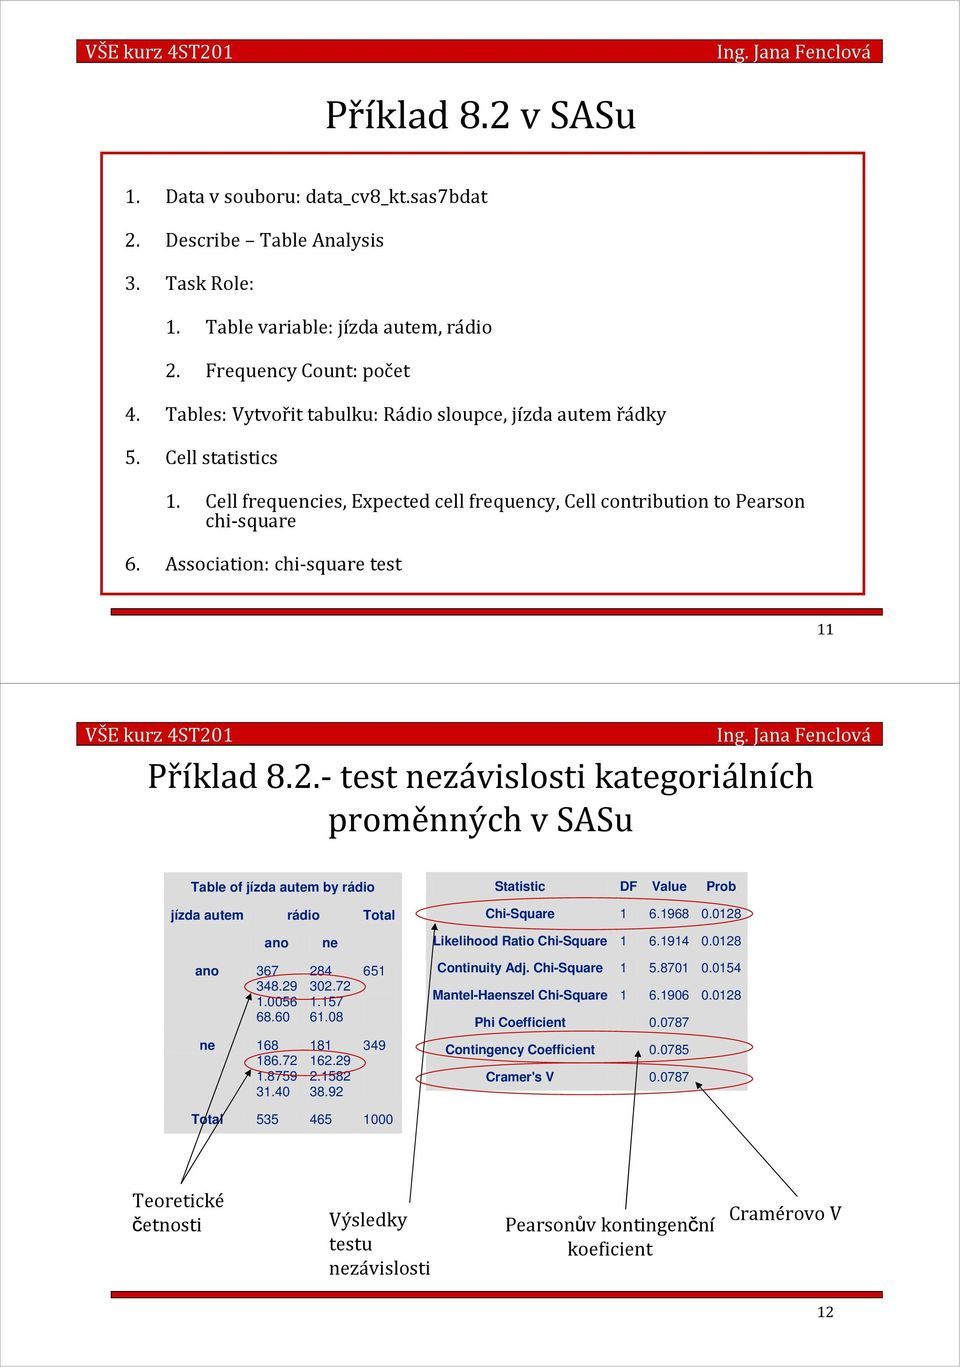 Associatio: chi-square test 11 VŠE urz 4ST01 Přílad 8..-test ezávislosti ategoriálích proměých v SASu Table of ízda autem by rádio Statistic DF Value Prob ízda autem ao ao 367 348.9 1.0056 68.